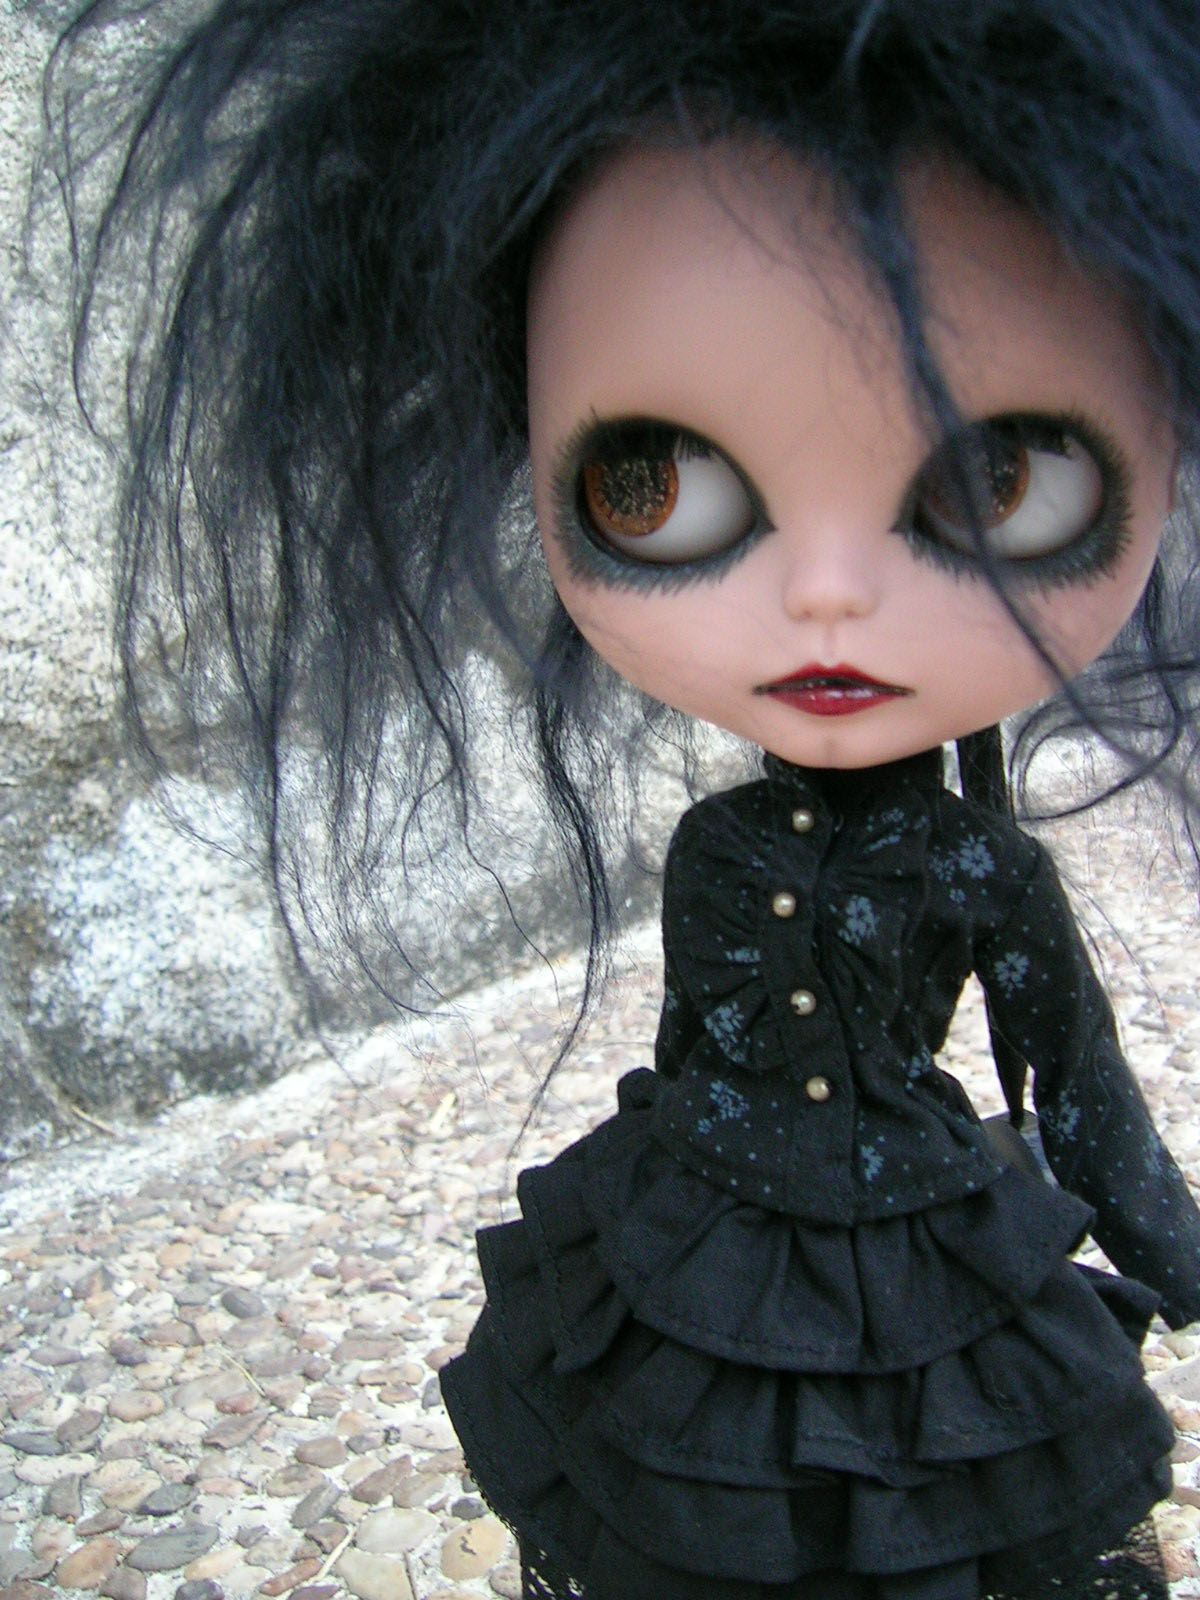 check this site out, such cute Blythe photos